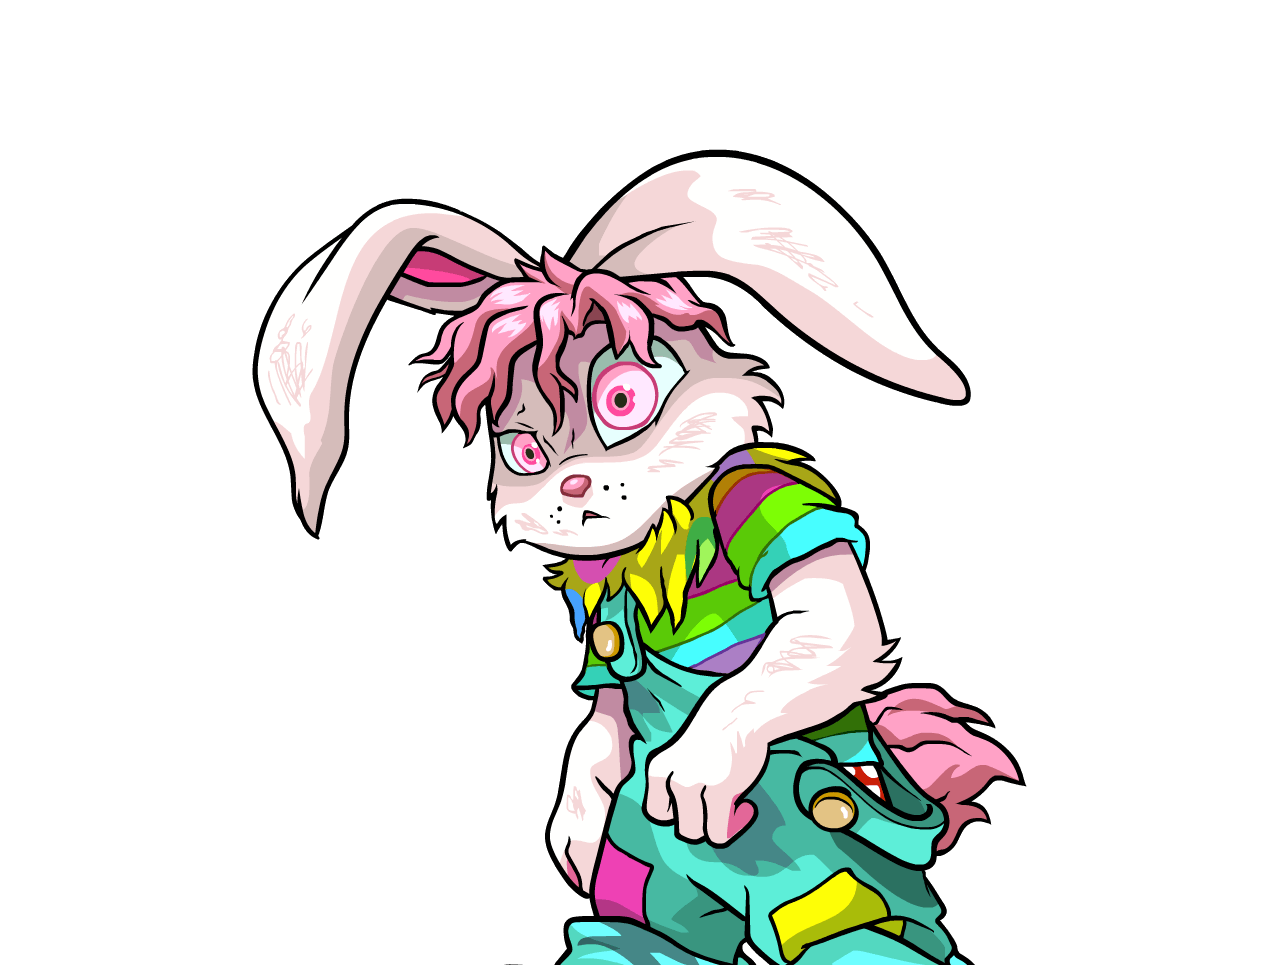 https://images.neopets.com/neggfest/y23/characters/TopsiStrangeRight.png